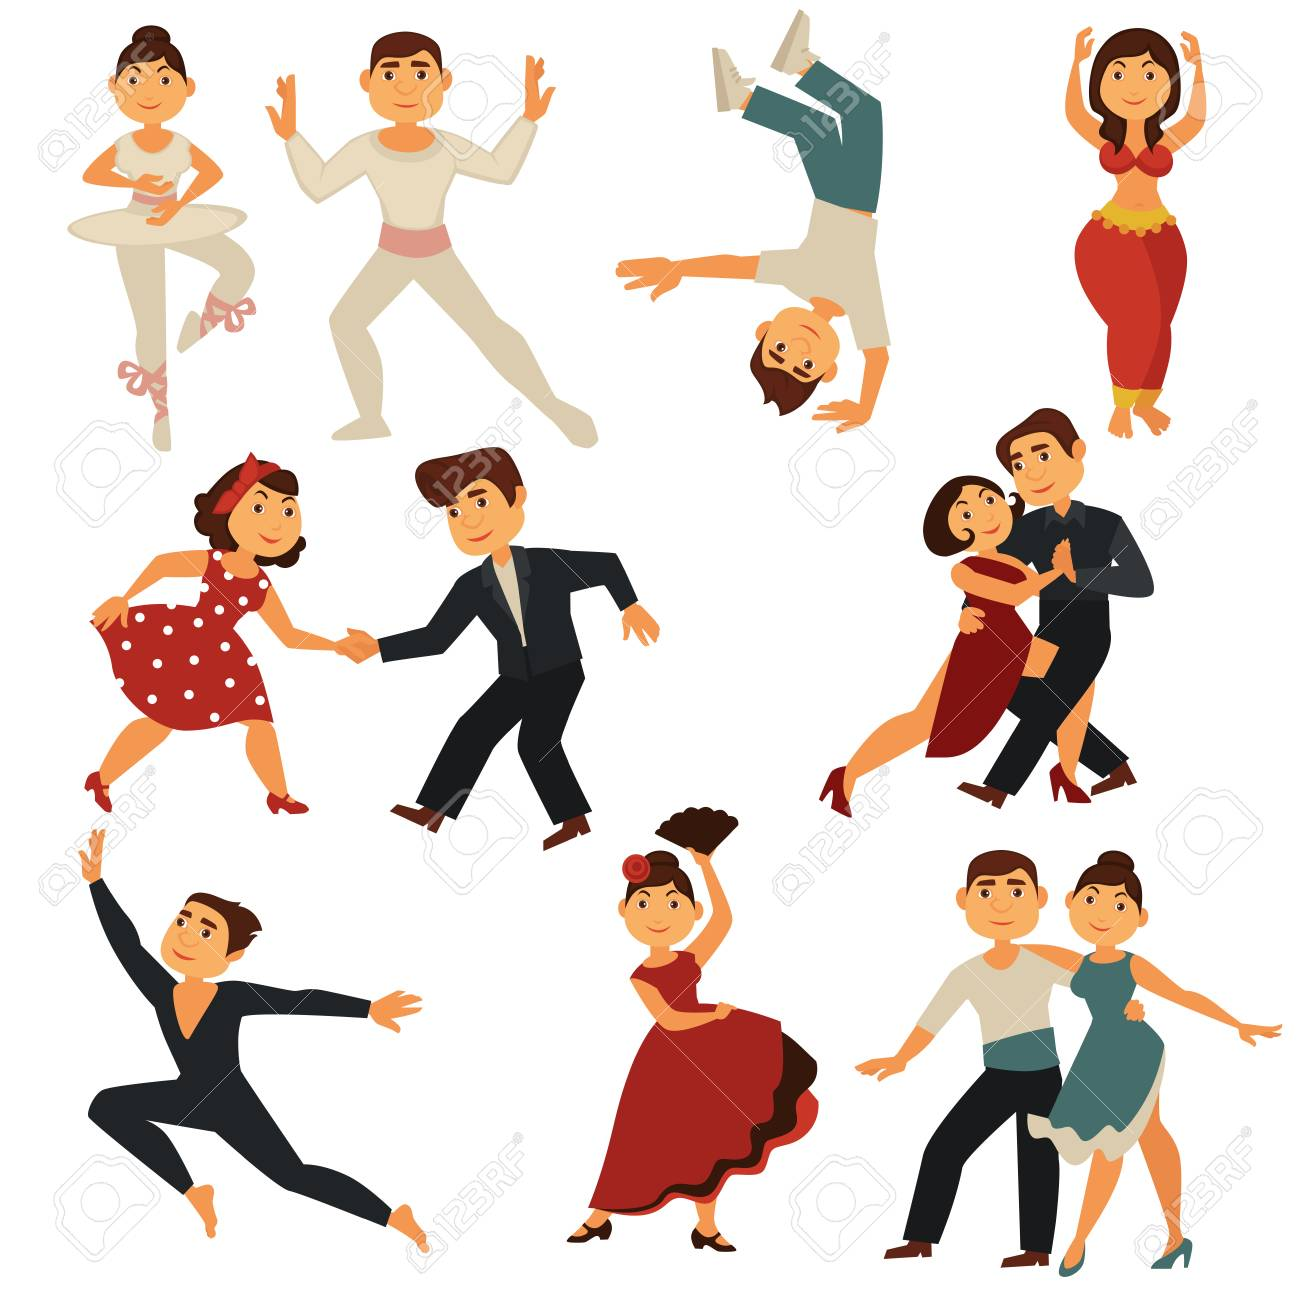 Dancing People Dance Different Dances Vector Flat Cartoon Characters Royalty Free Cliparts Vectors And Stock Illustration Image 96238571